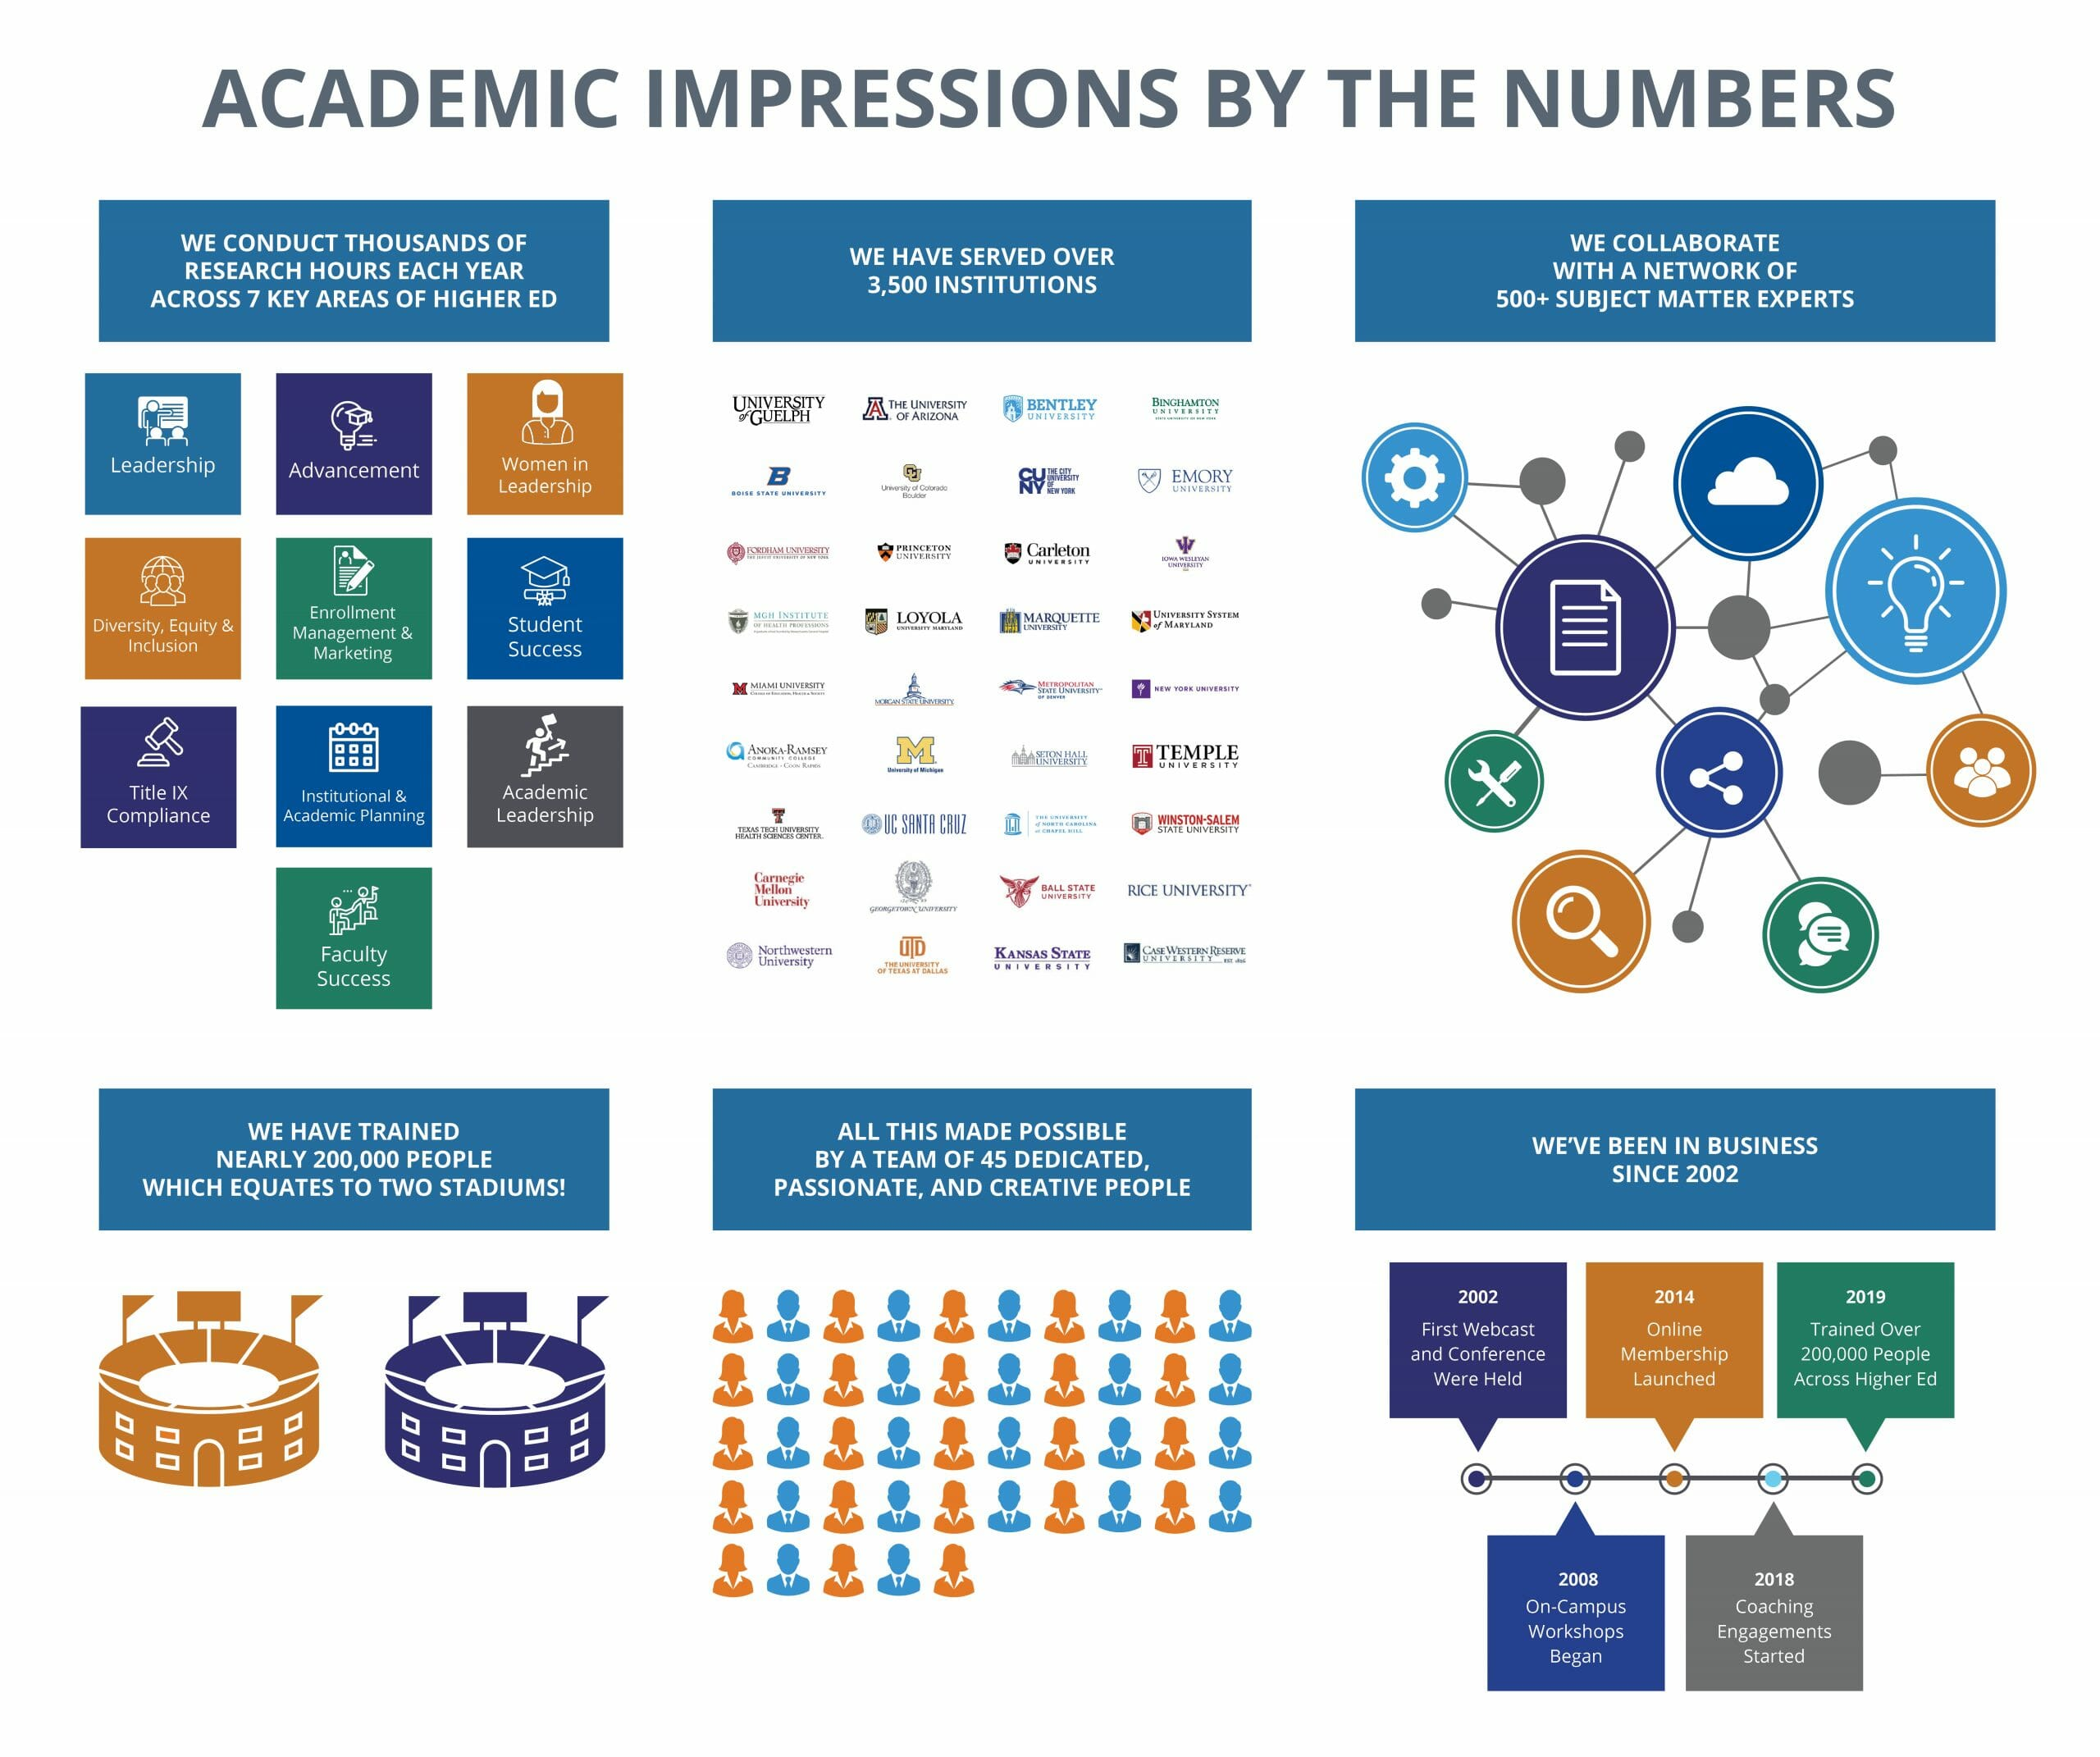 Infographic showing key metrics concerning the history of Academic Impressions